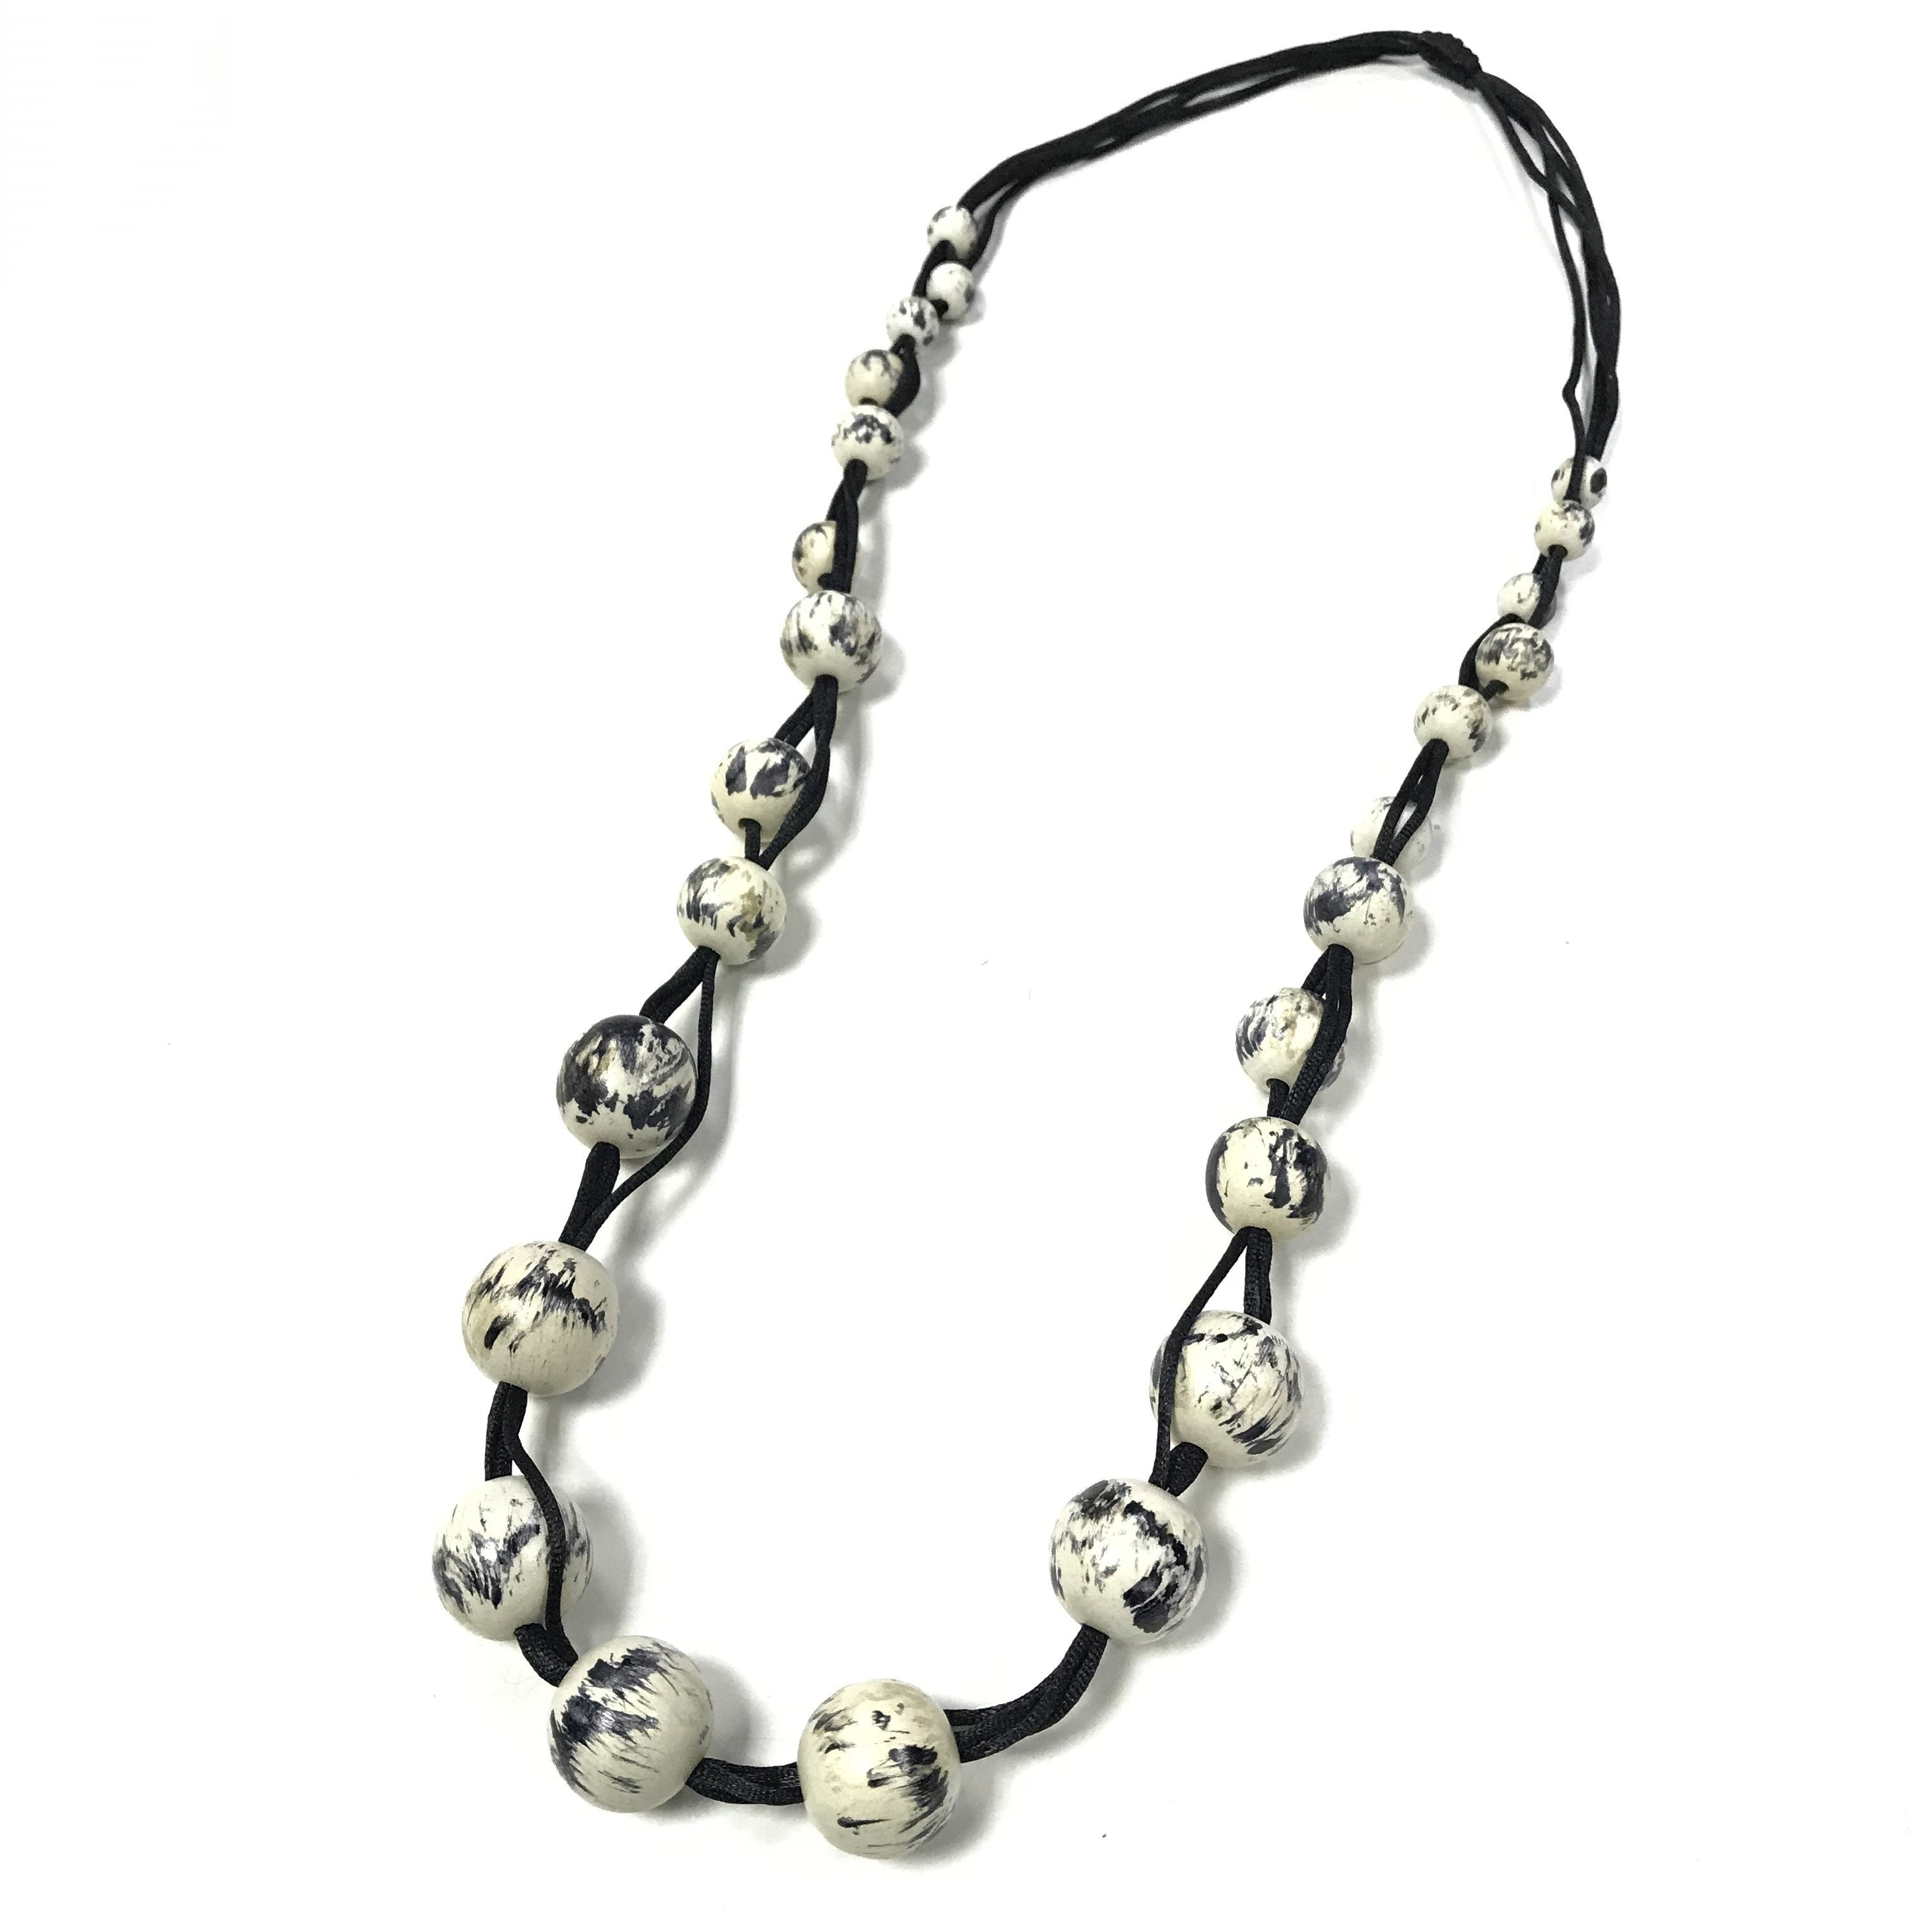 Polly - Long Monochrome Beaded Necklace